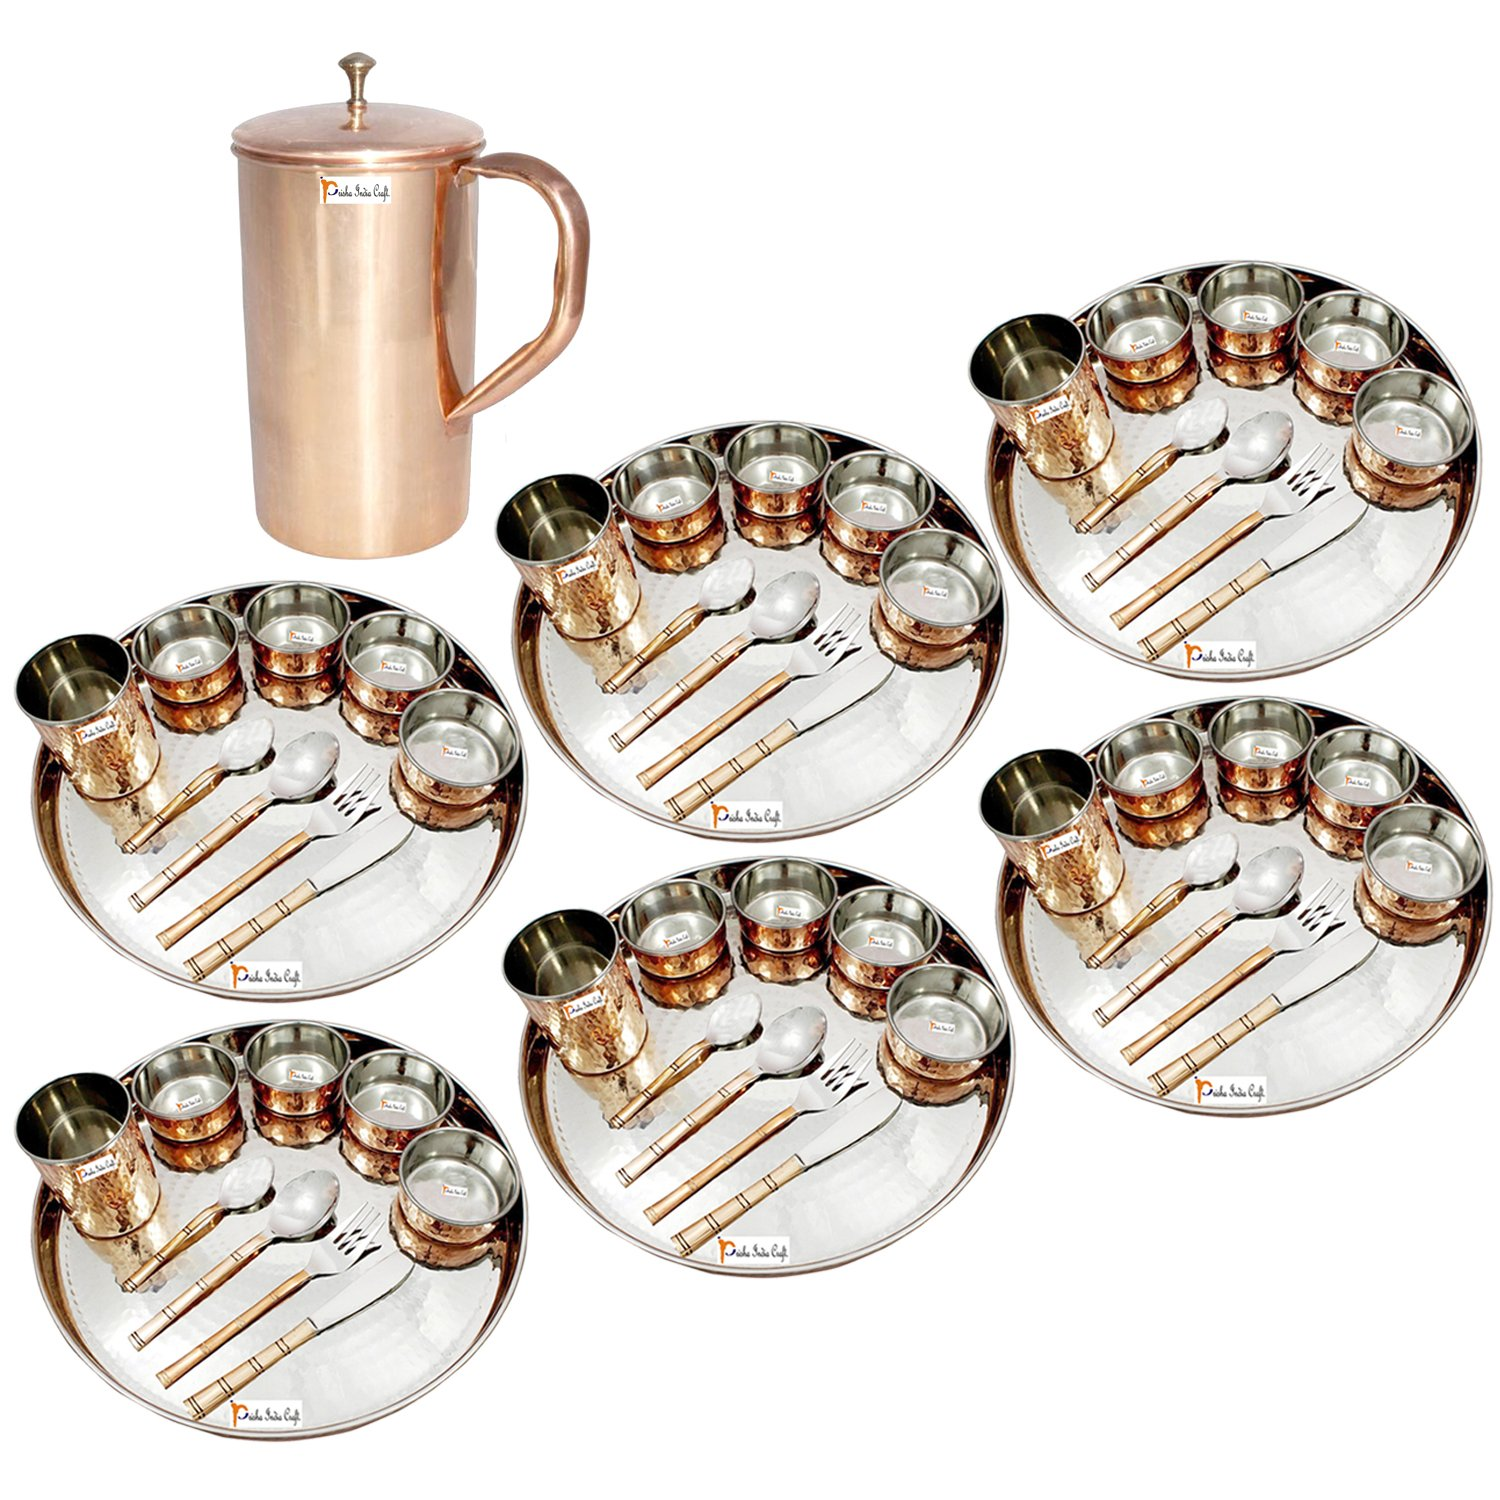 Prisha India Craft ® Set of 6 Dinnerware Traditional Stainless Steel Copper Dinner Set of Thali Plate, Bowls, Glass and Spoons, Dia 13'' With 1 Pure Copper Classic Pitcher Jug - Christmas Gift